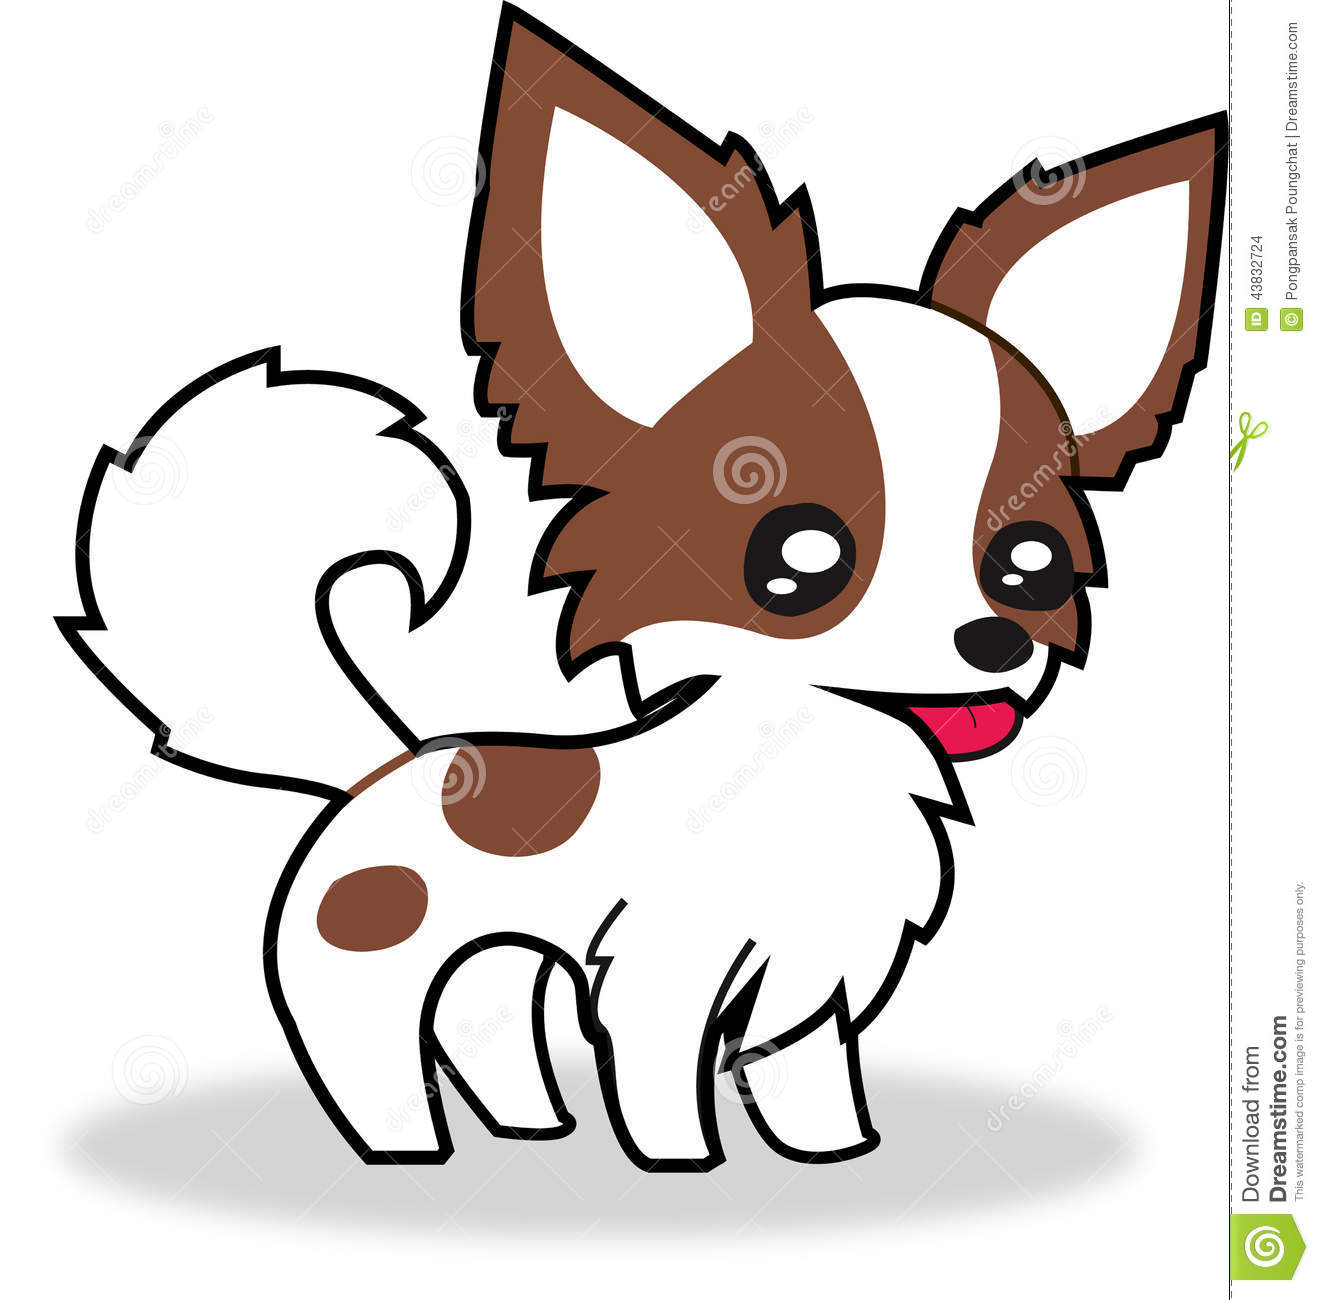 Clip Art Chihuahua Clipart cartoon chihuahua dog clip art stock photos images pictures images